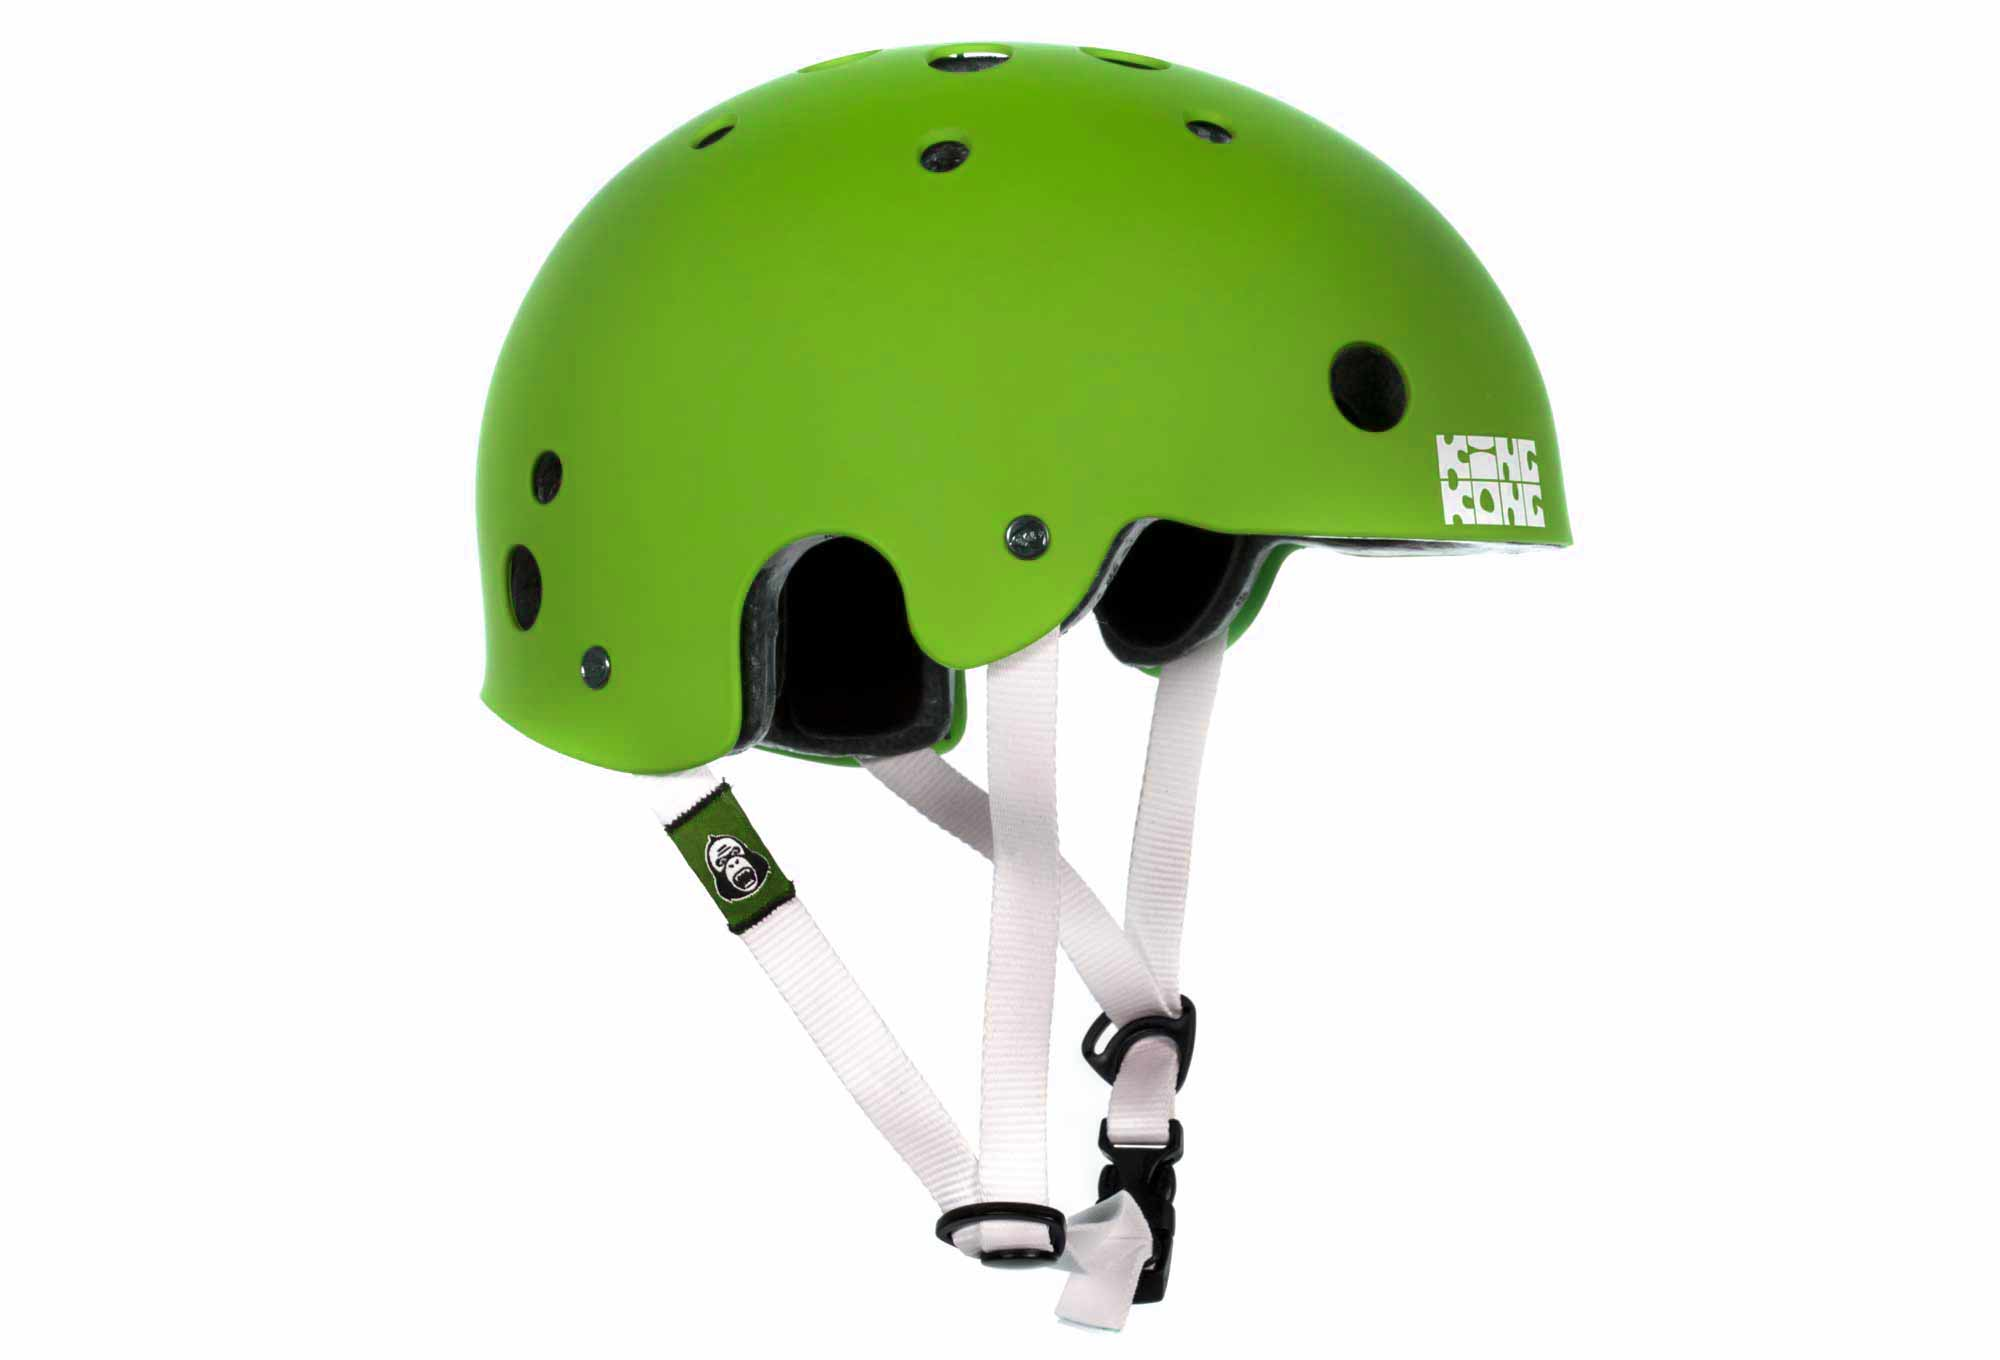 7f5a5d07ab2 KING KONG NEW FIT Helmet Green